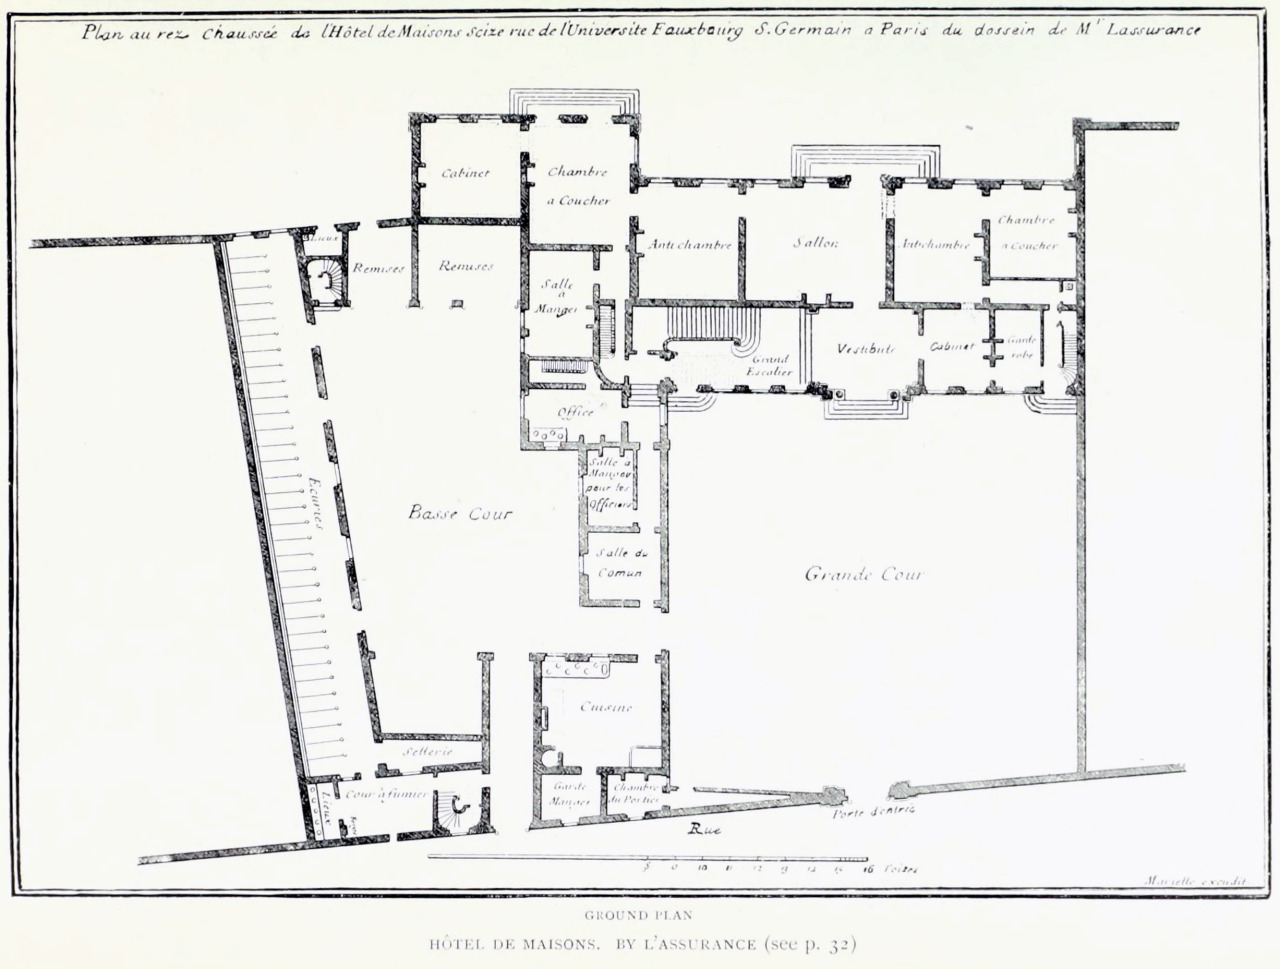 L'Assurance's plan for the Hôtel de Maisons, Paris